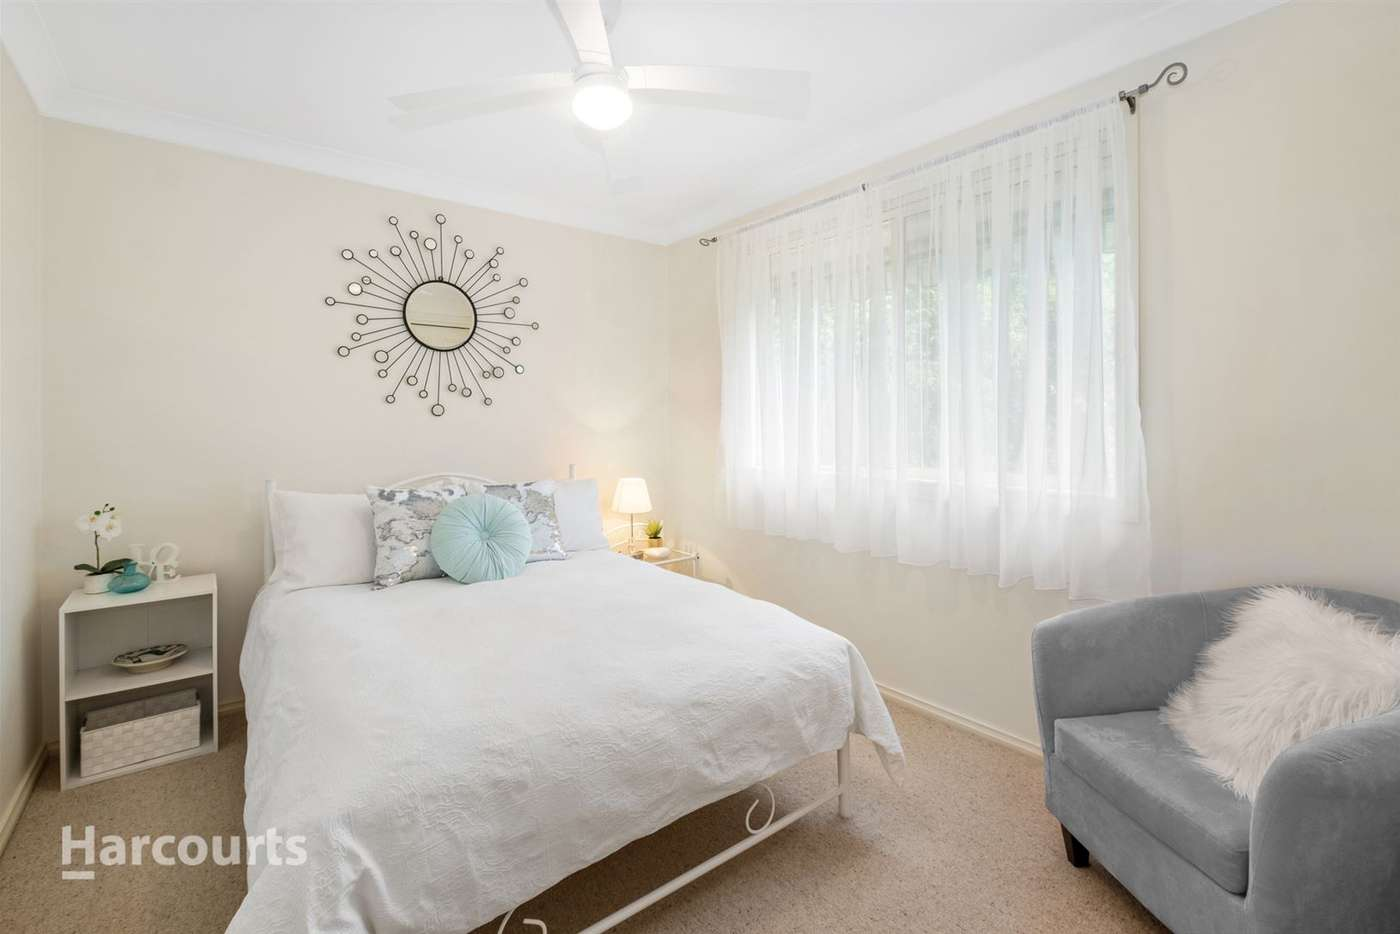 Sixth view of Homely villa listing, 5 Melville Street, Kincumber NSW 2251